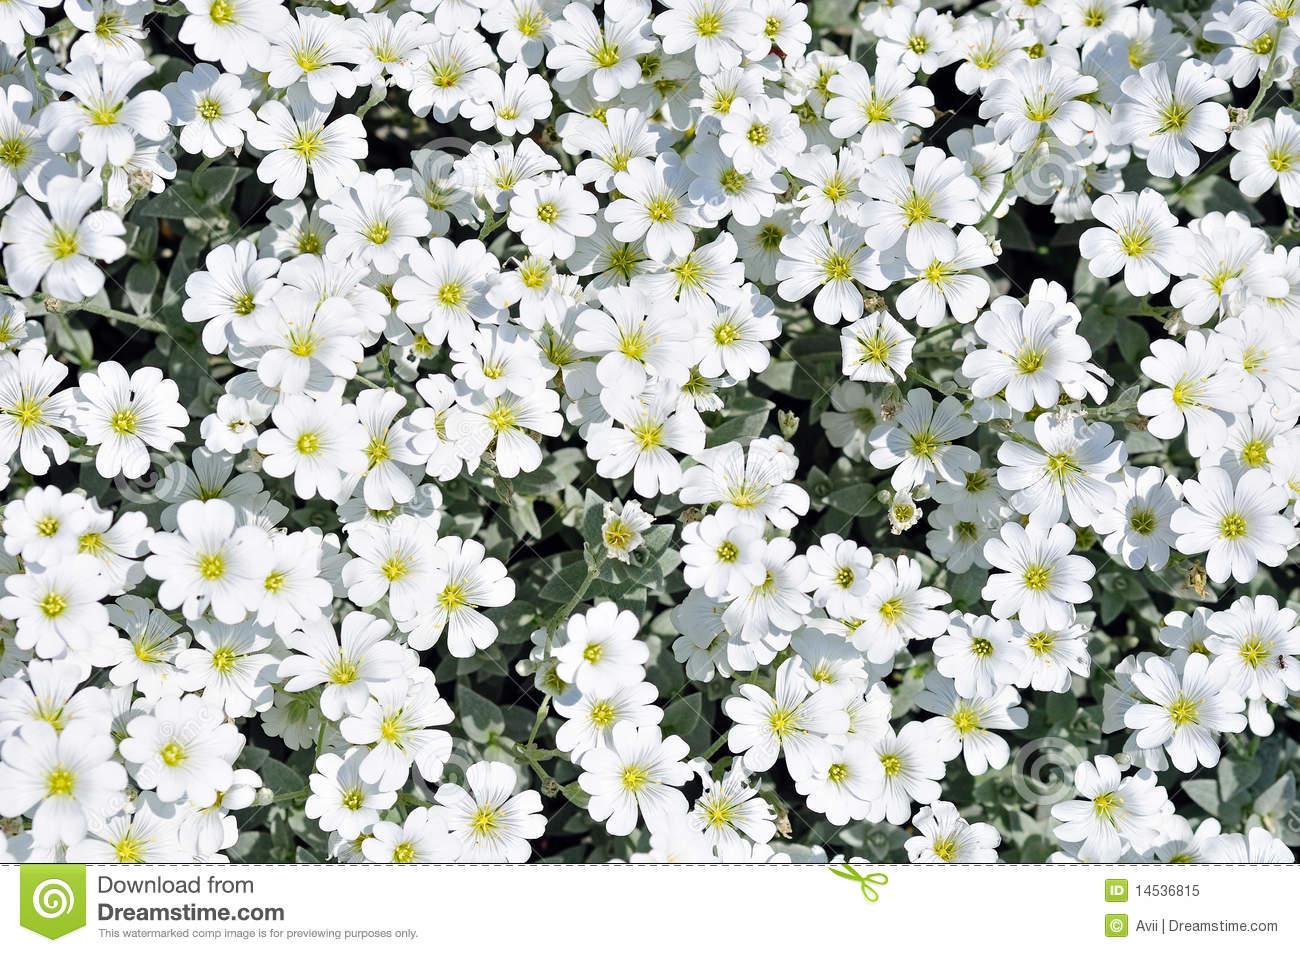 Flowerbed Of White Dianthus Flowers Stock Image Image Of Delicate